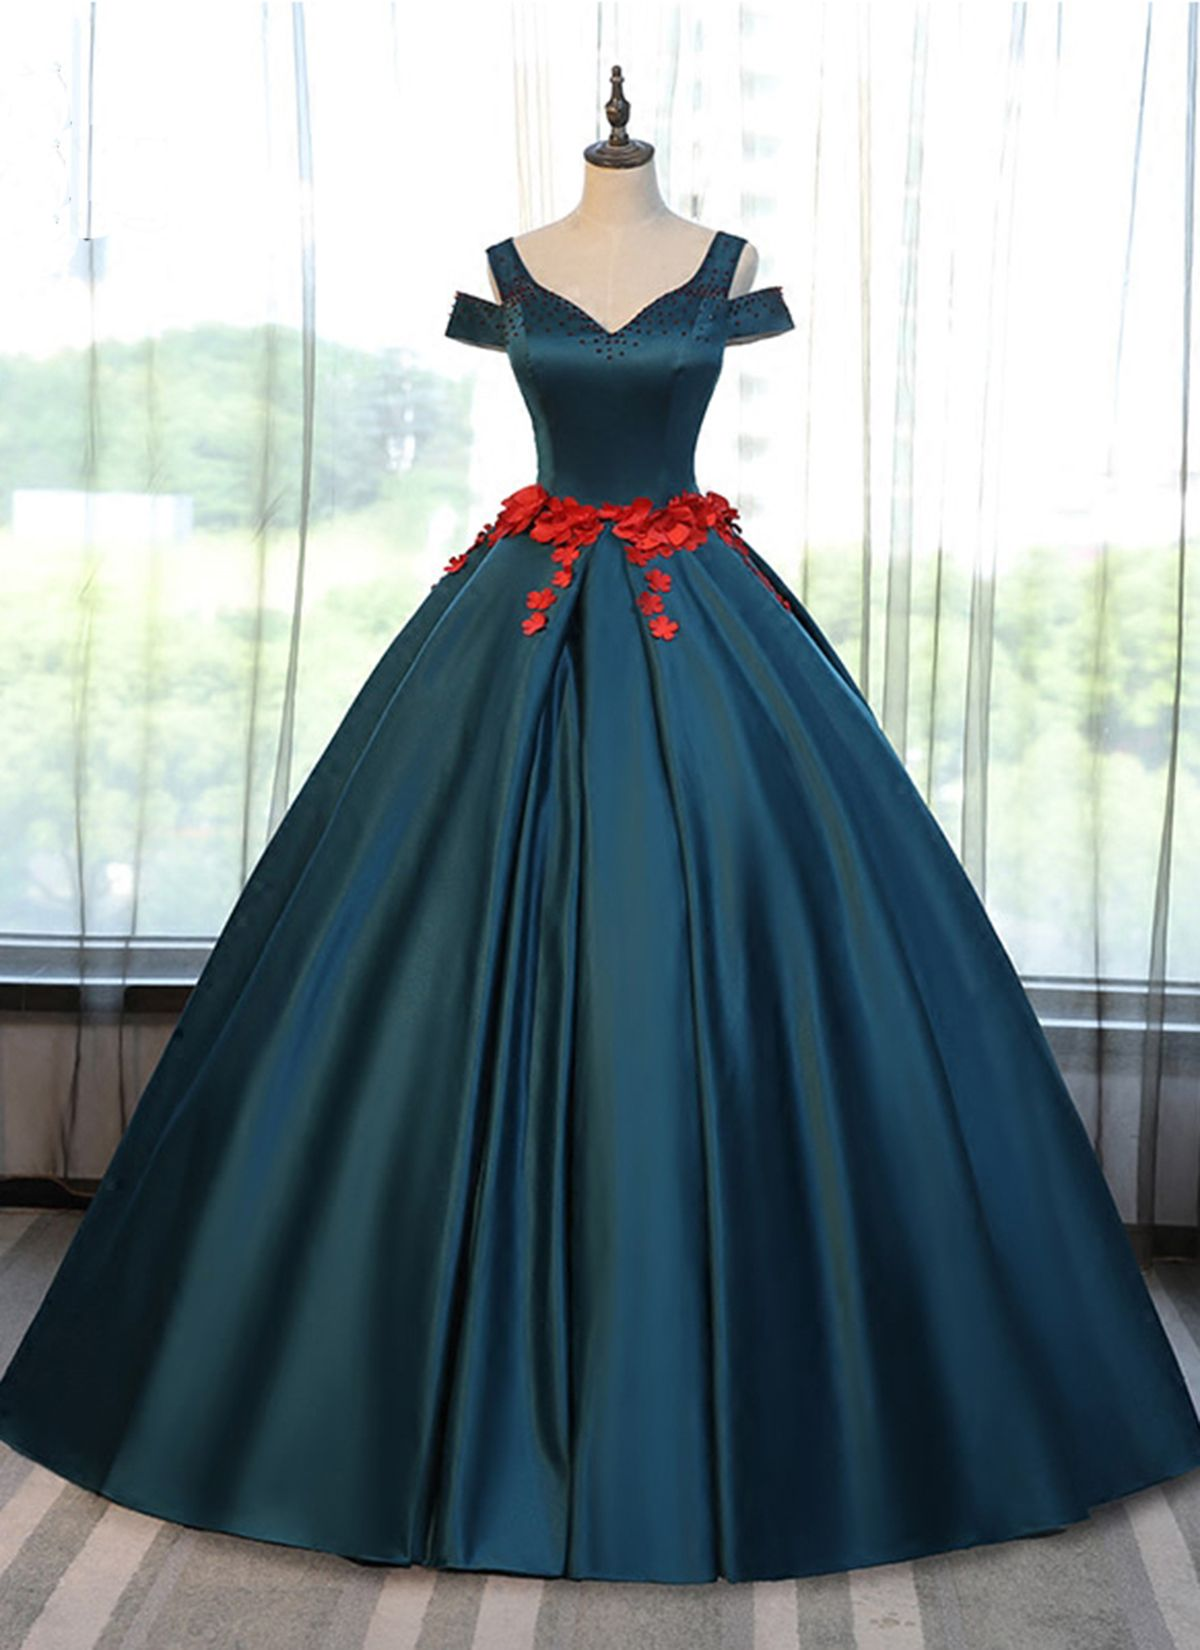 Simple deep green off shoulder long halter prom gown with flower